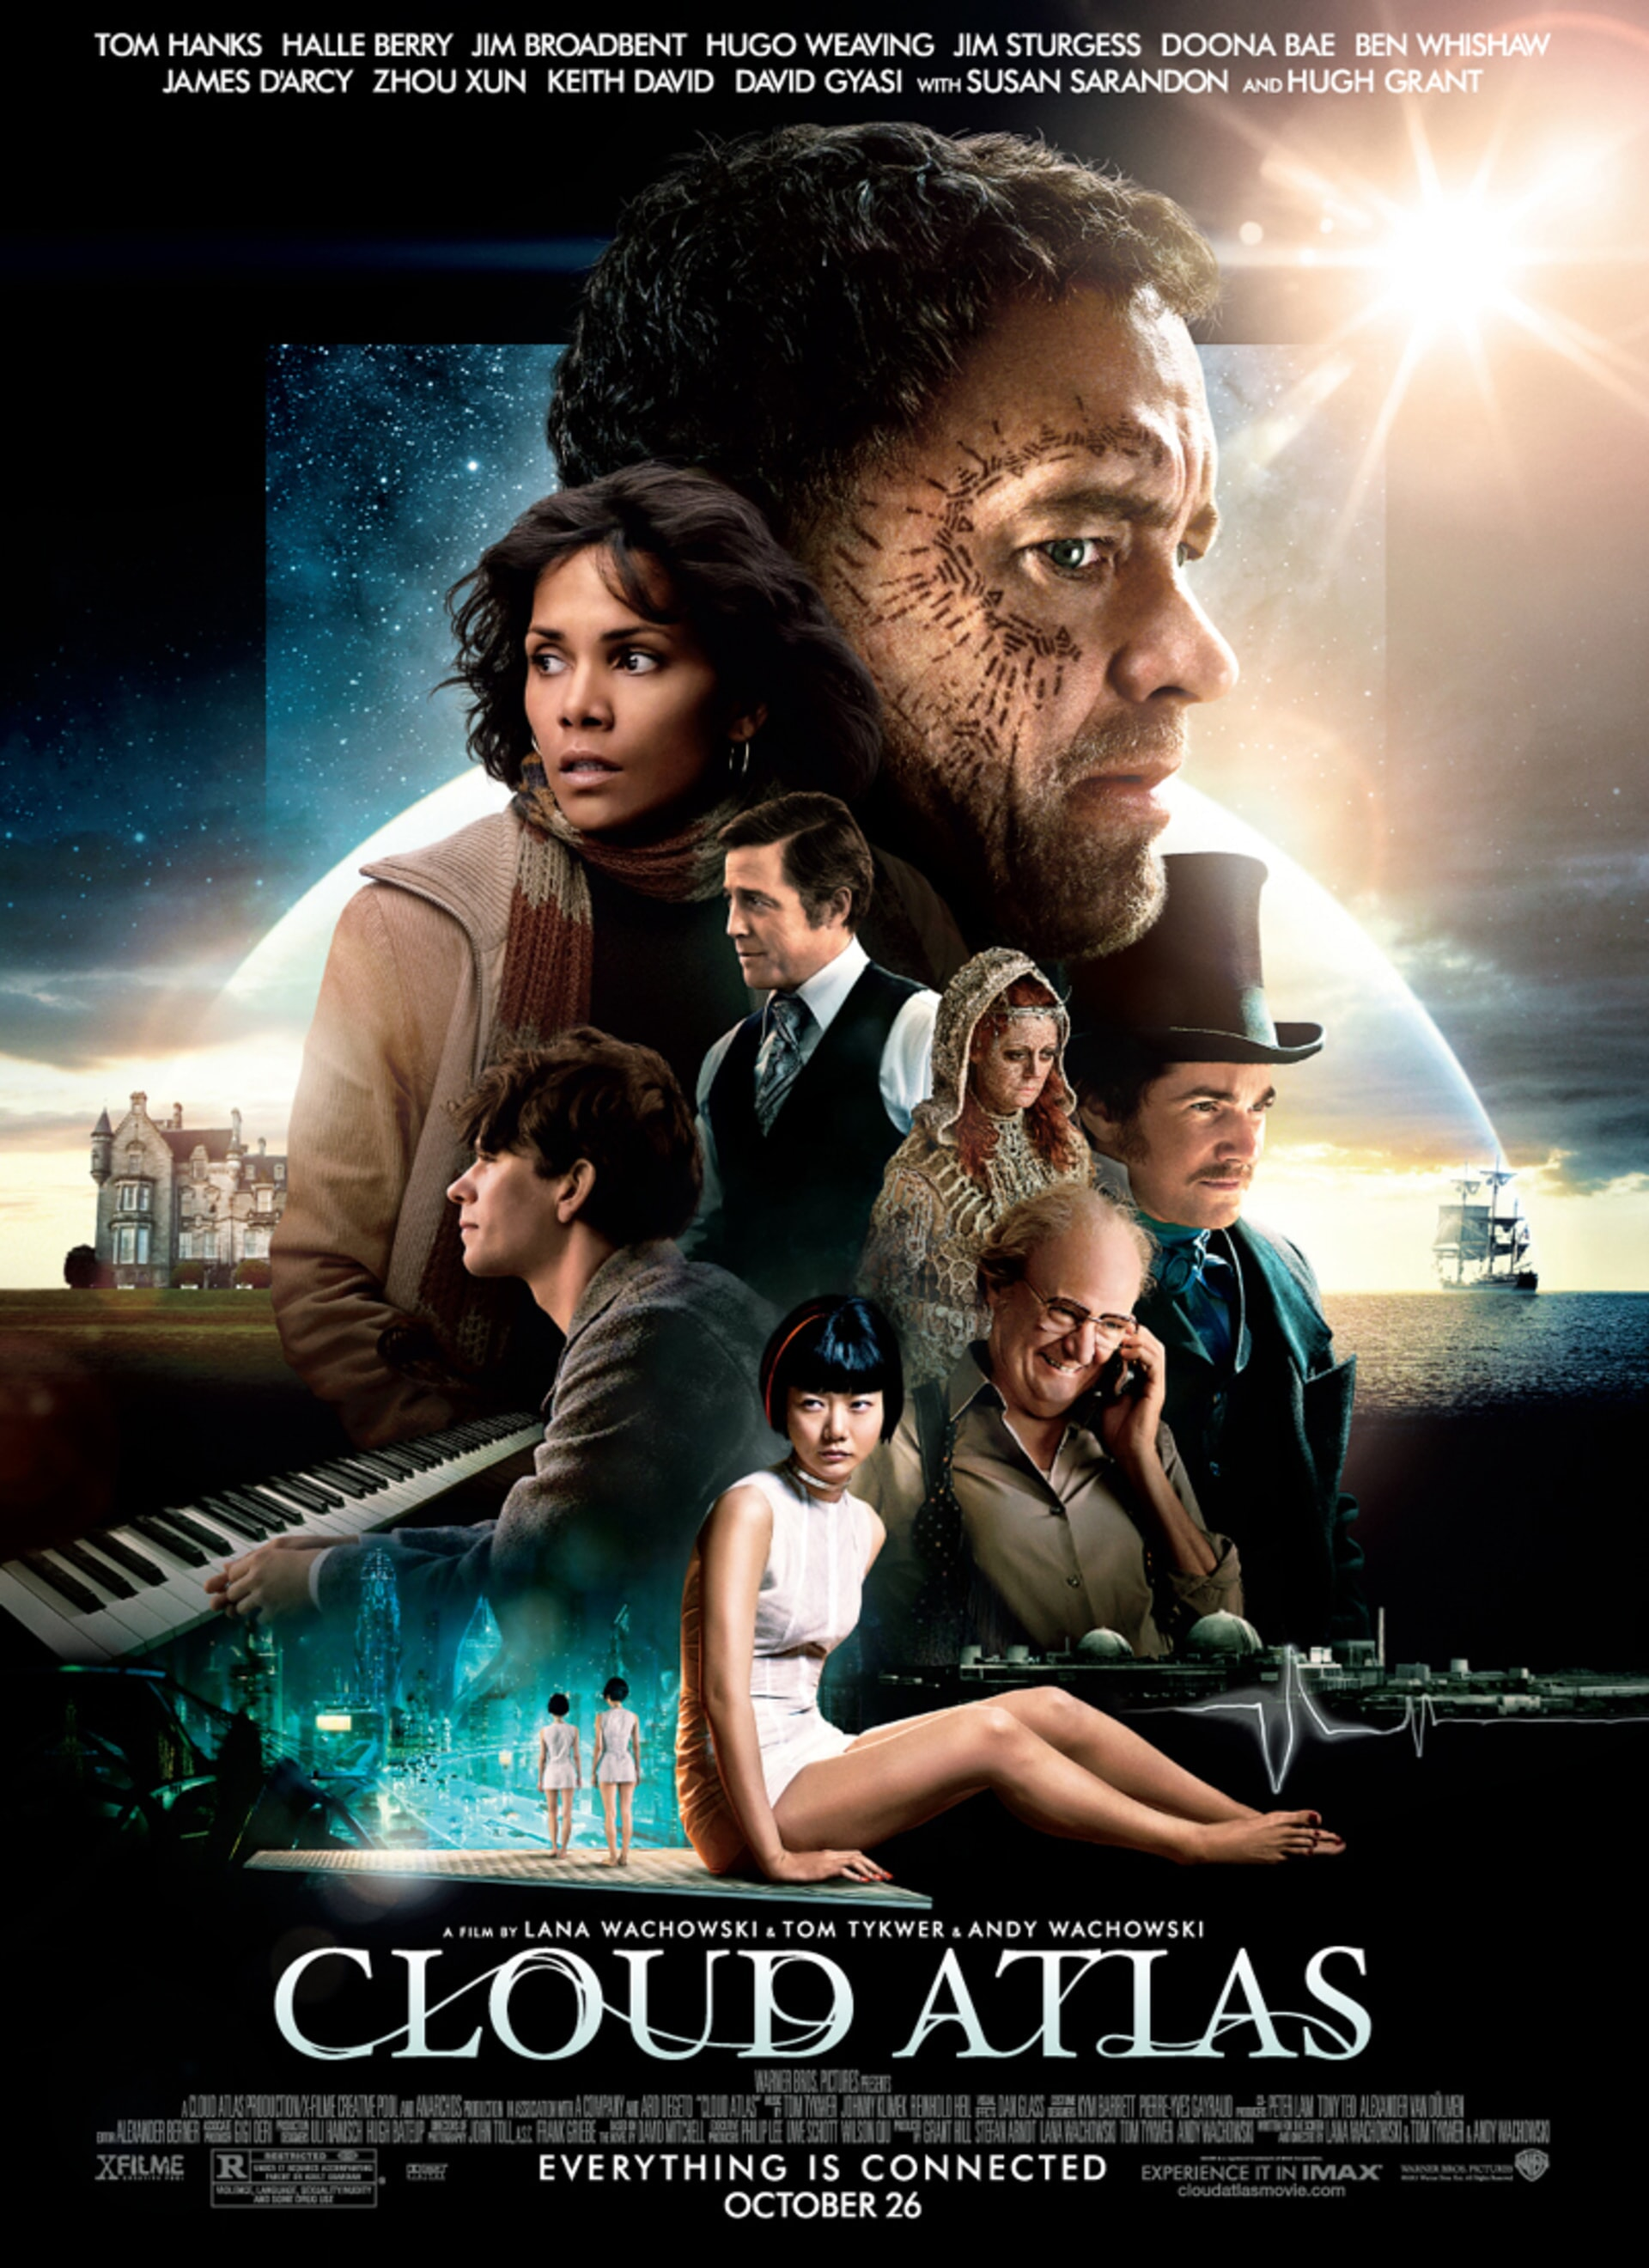 Cloud Atlas - Poster 1